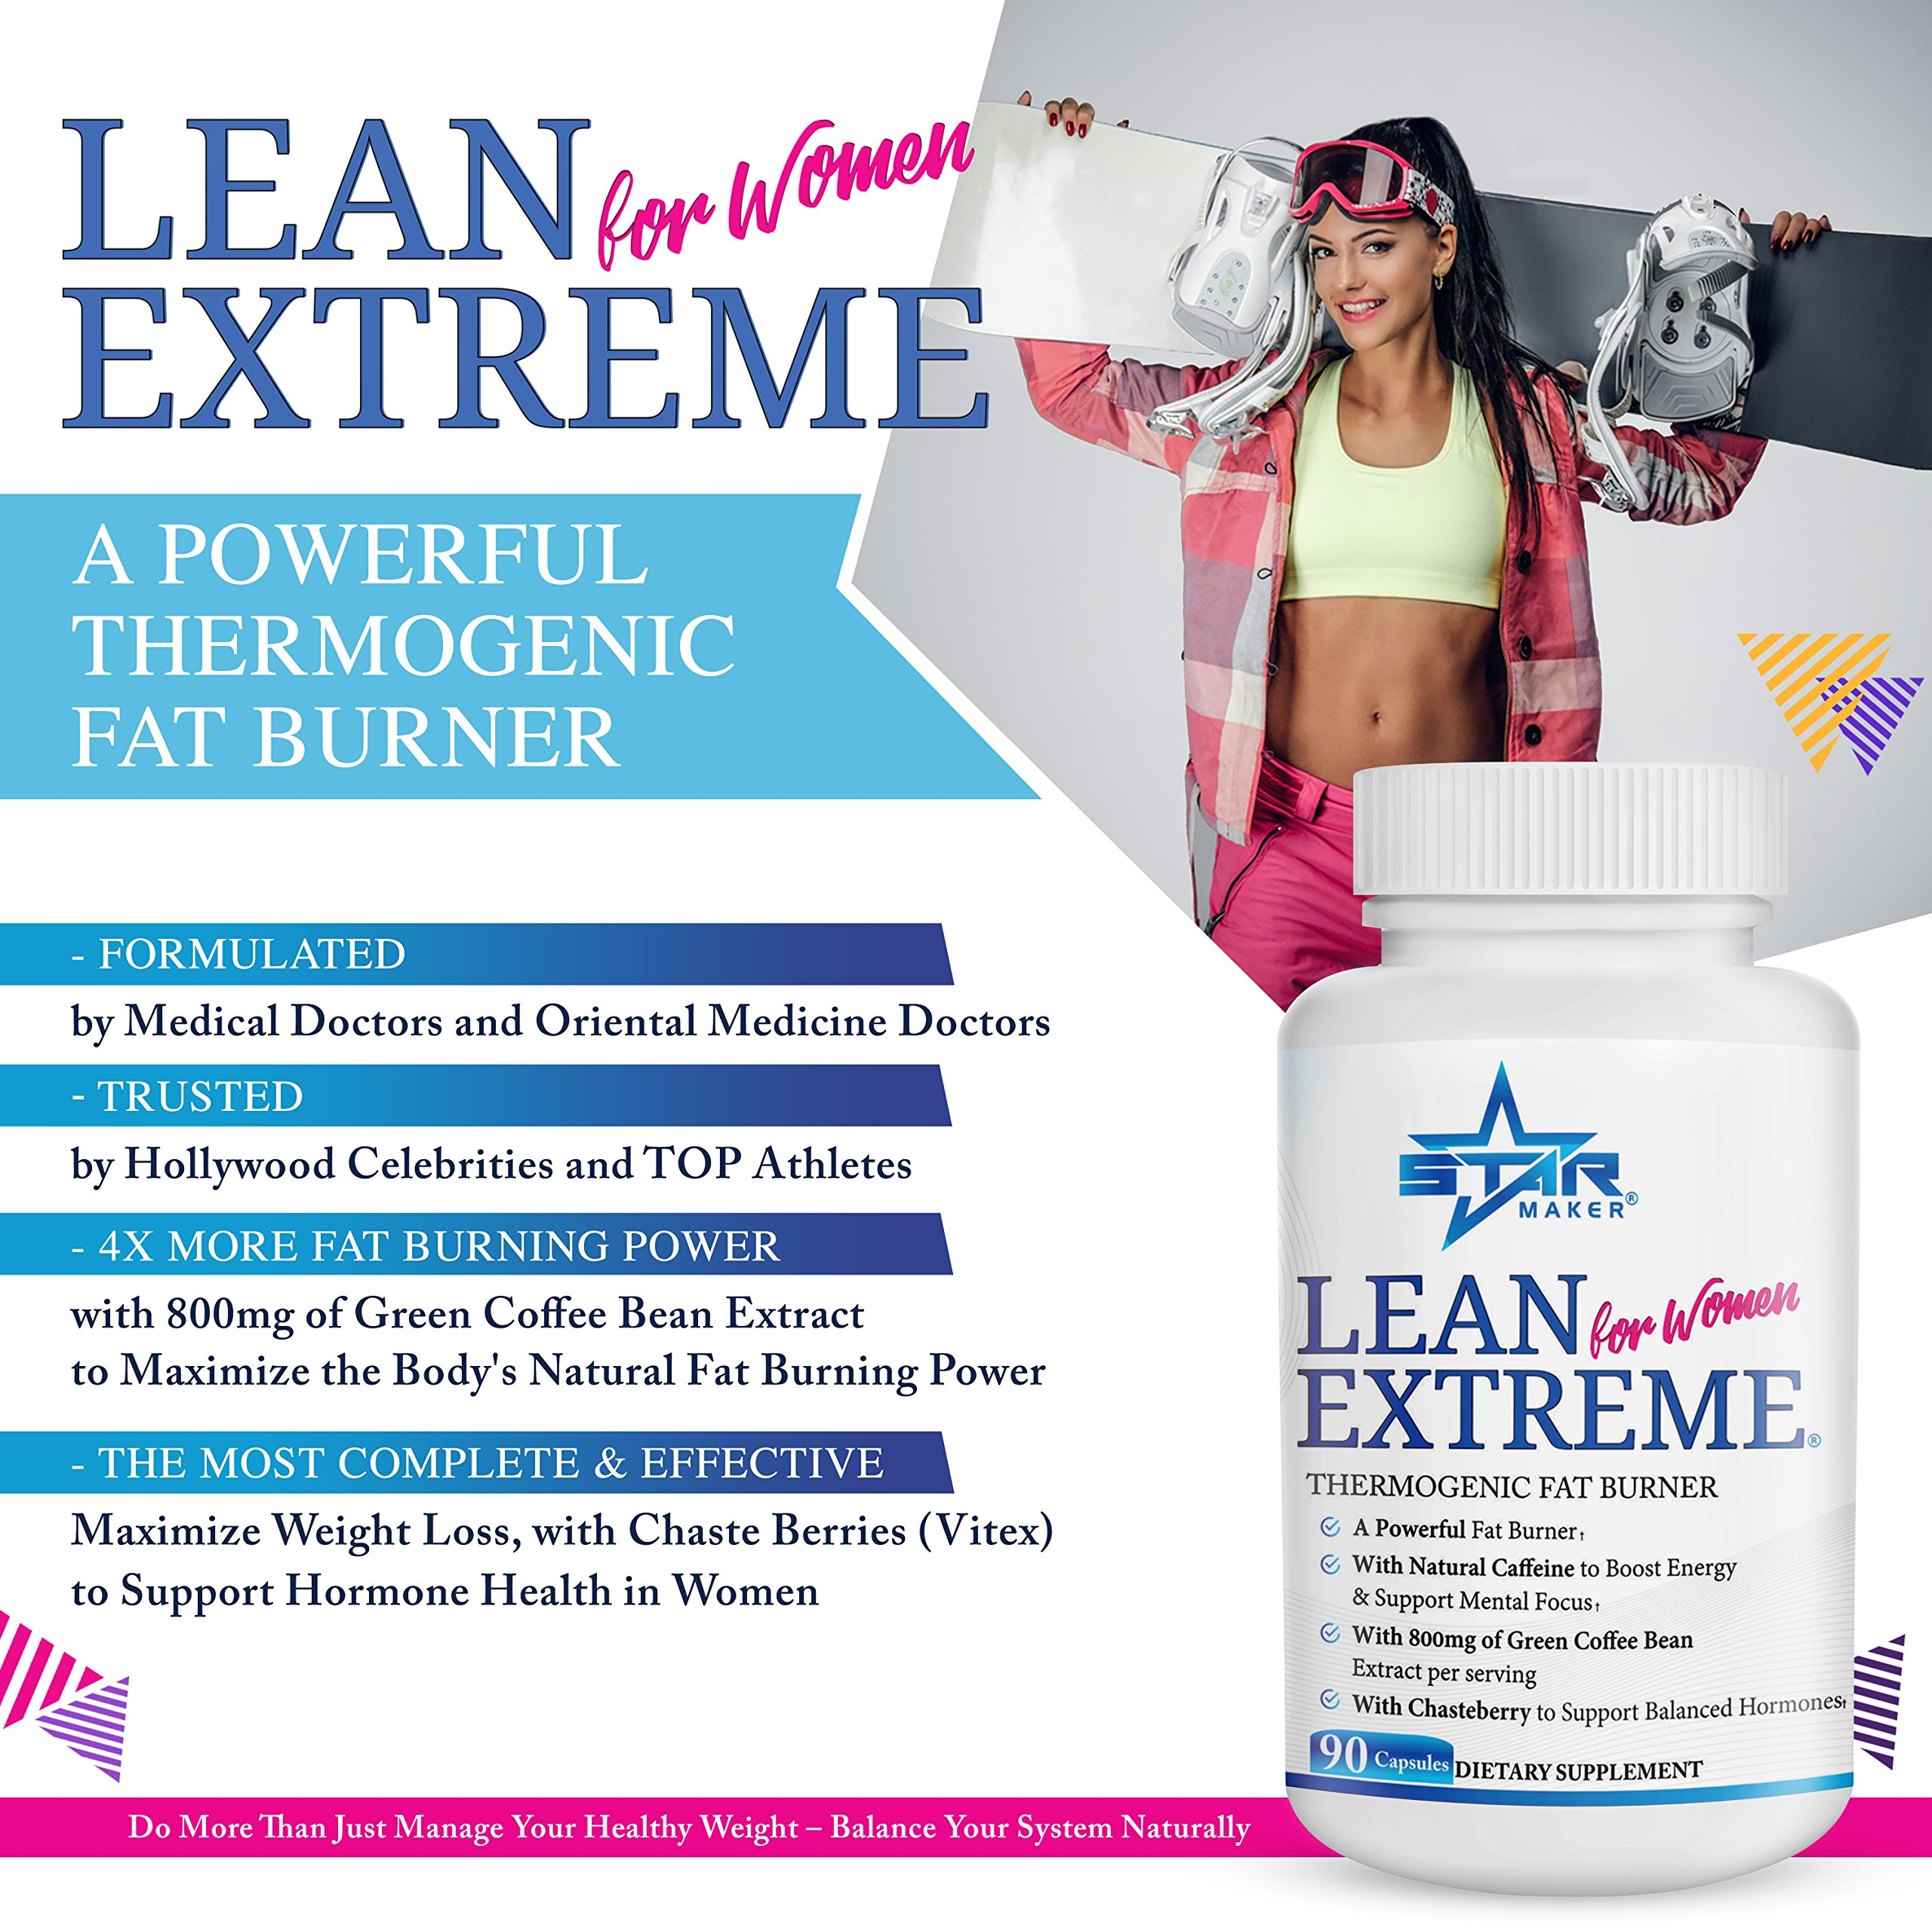 Lean Extreme Keto Weight Loss Diet Pills and Thermogenic Fat Burner for Women - 4X More Green Coffee Bean, Appetite Suppressant & Energy Booster, Supports Balanced Hormones, 90-Count by STARMAKER (Image #2)